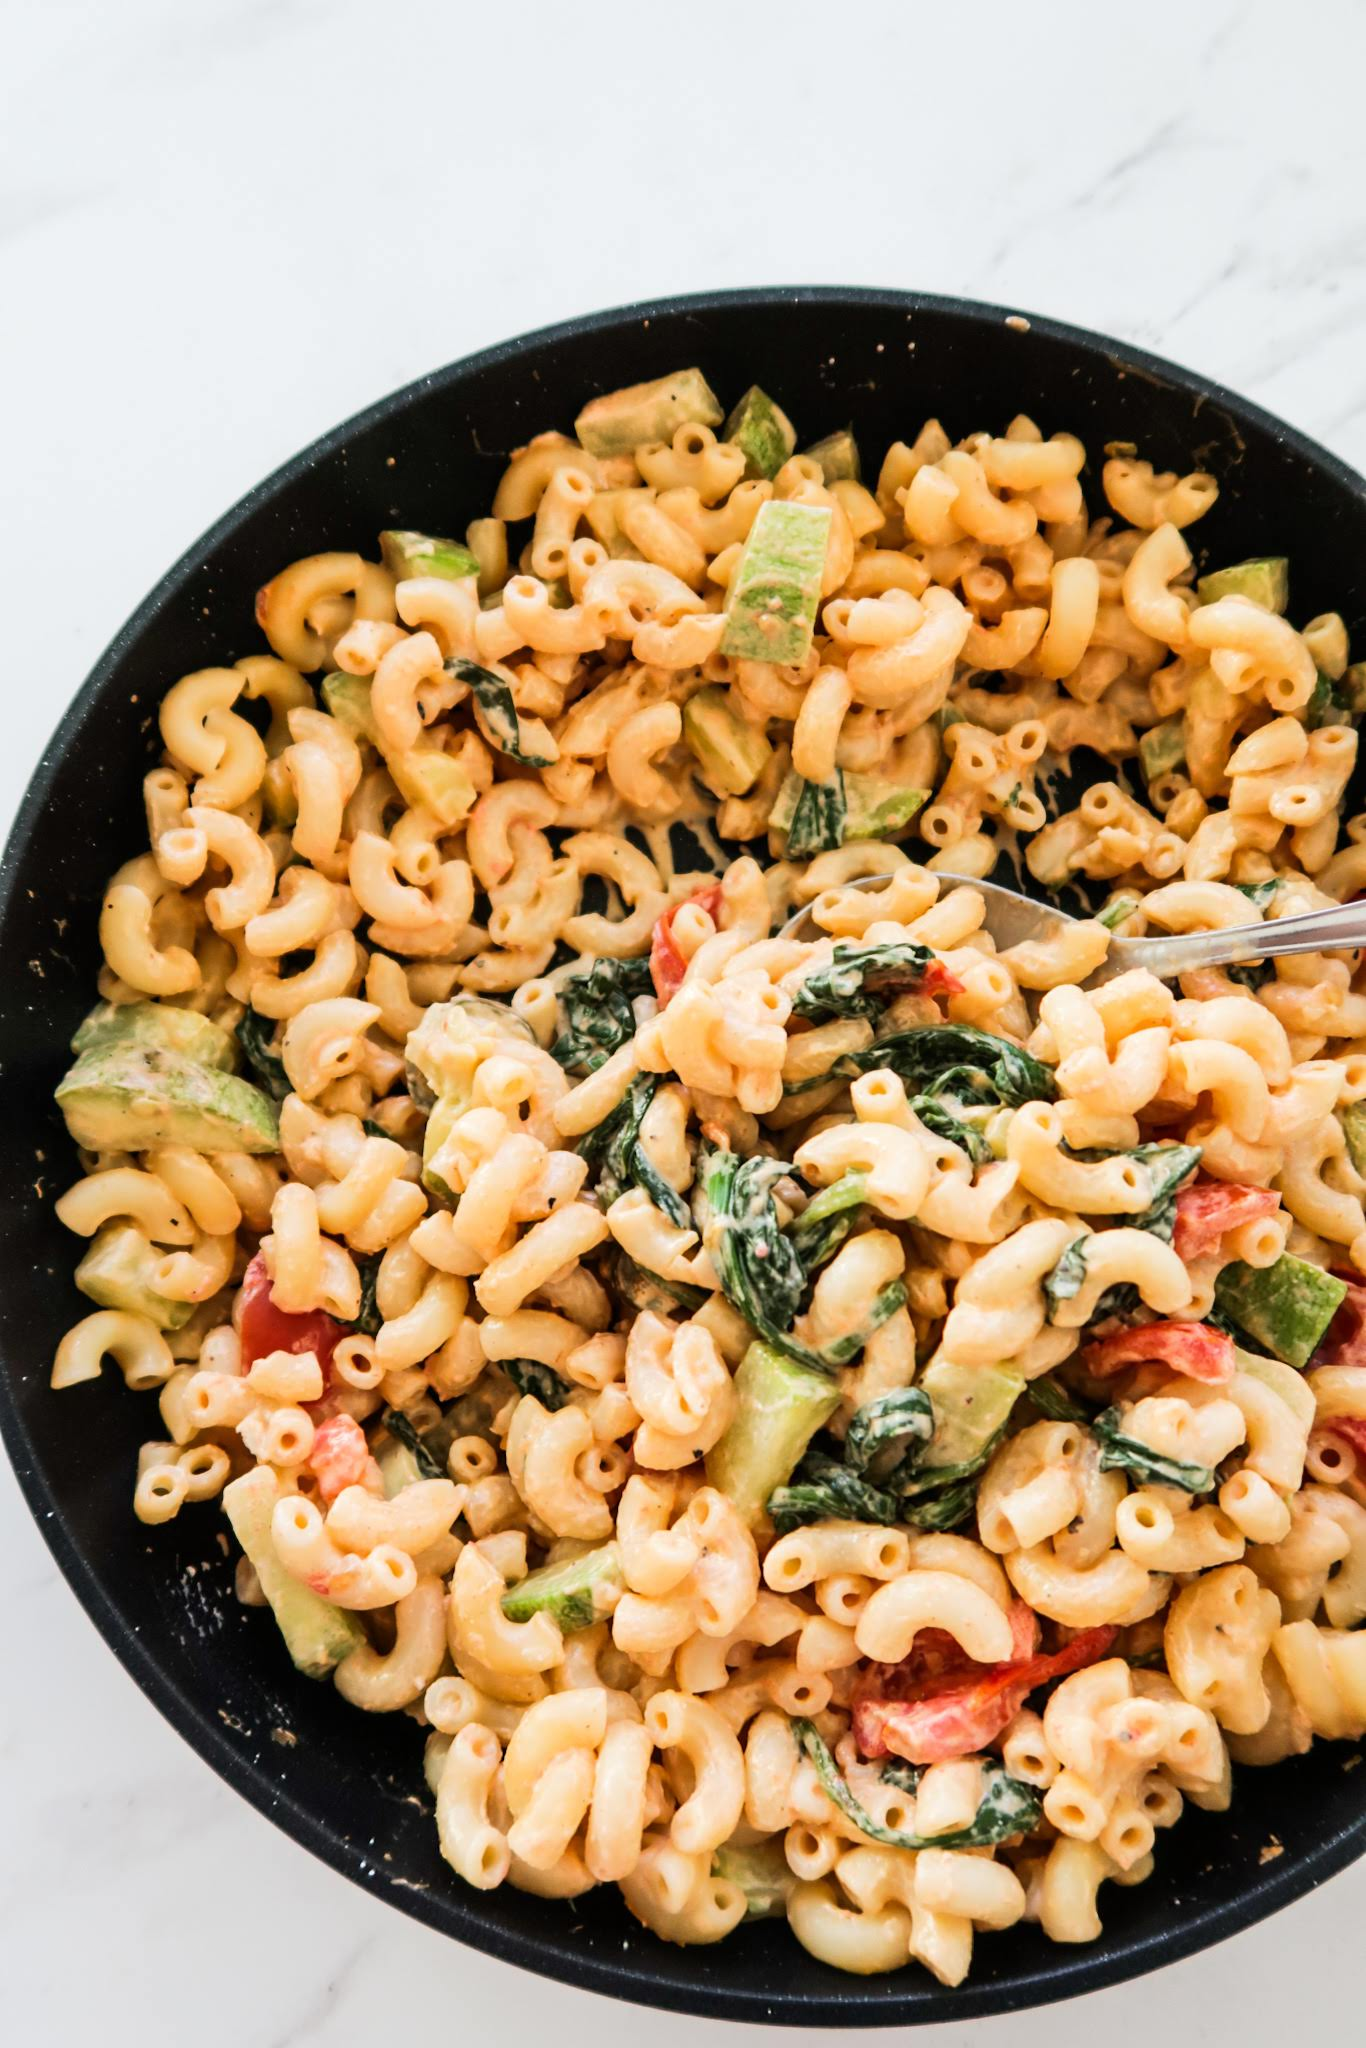 An easy creamy pasta recipe with cream cheese, spinach and zucchini. This garlicky vegetarian pasta is a healthy (ish) quick dinner idea that you'll love!